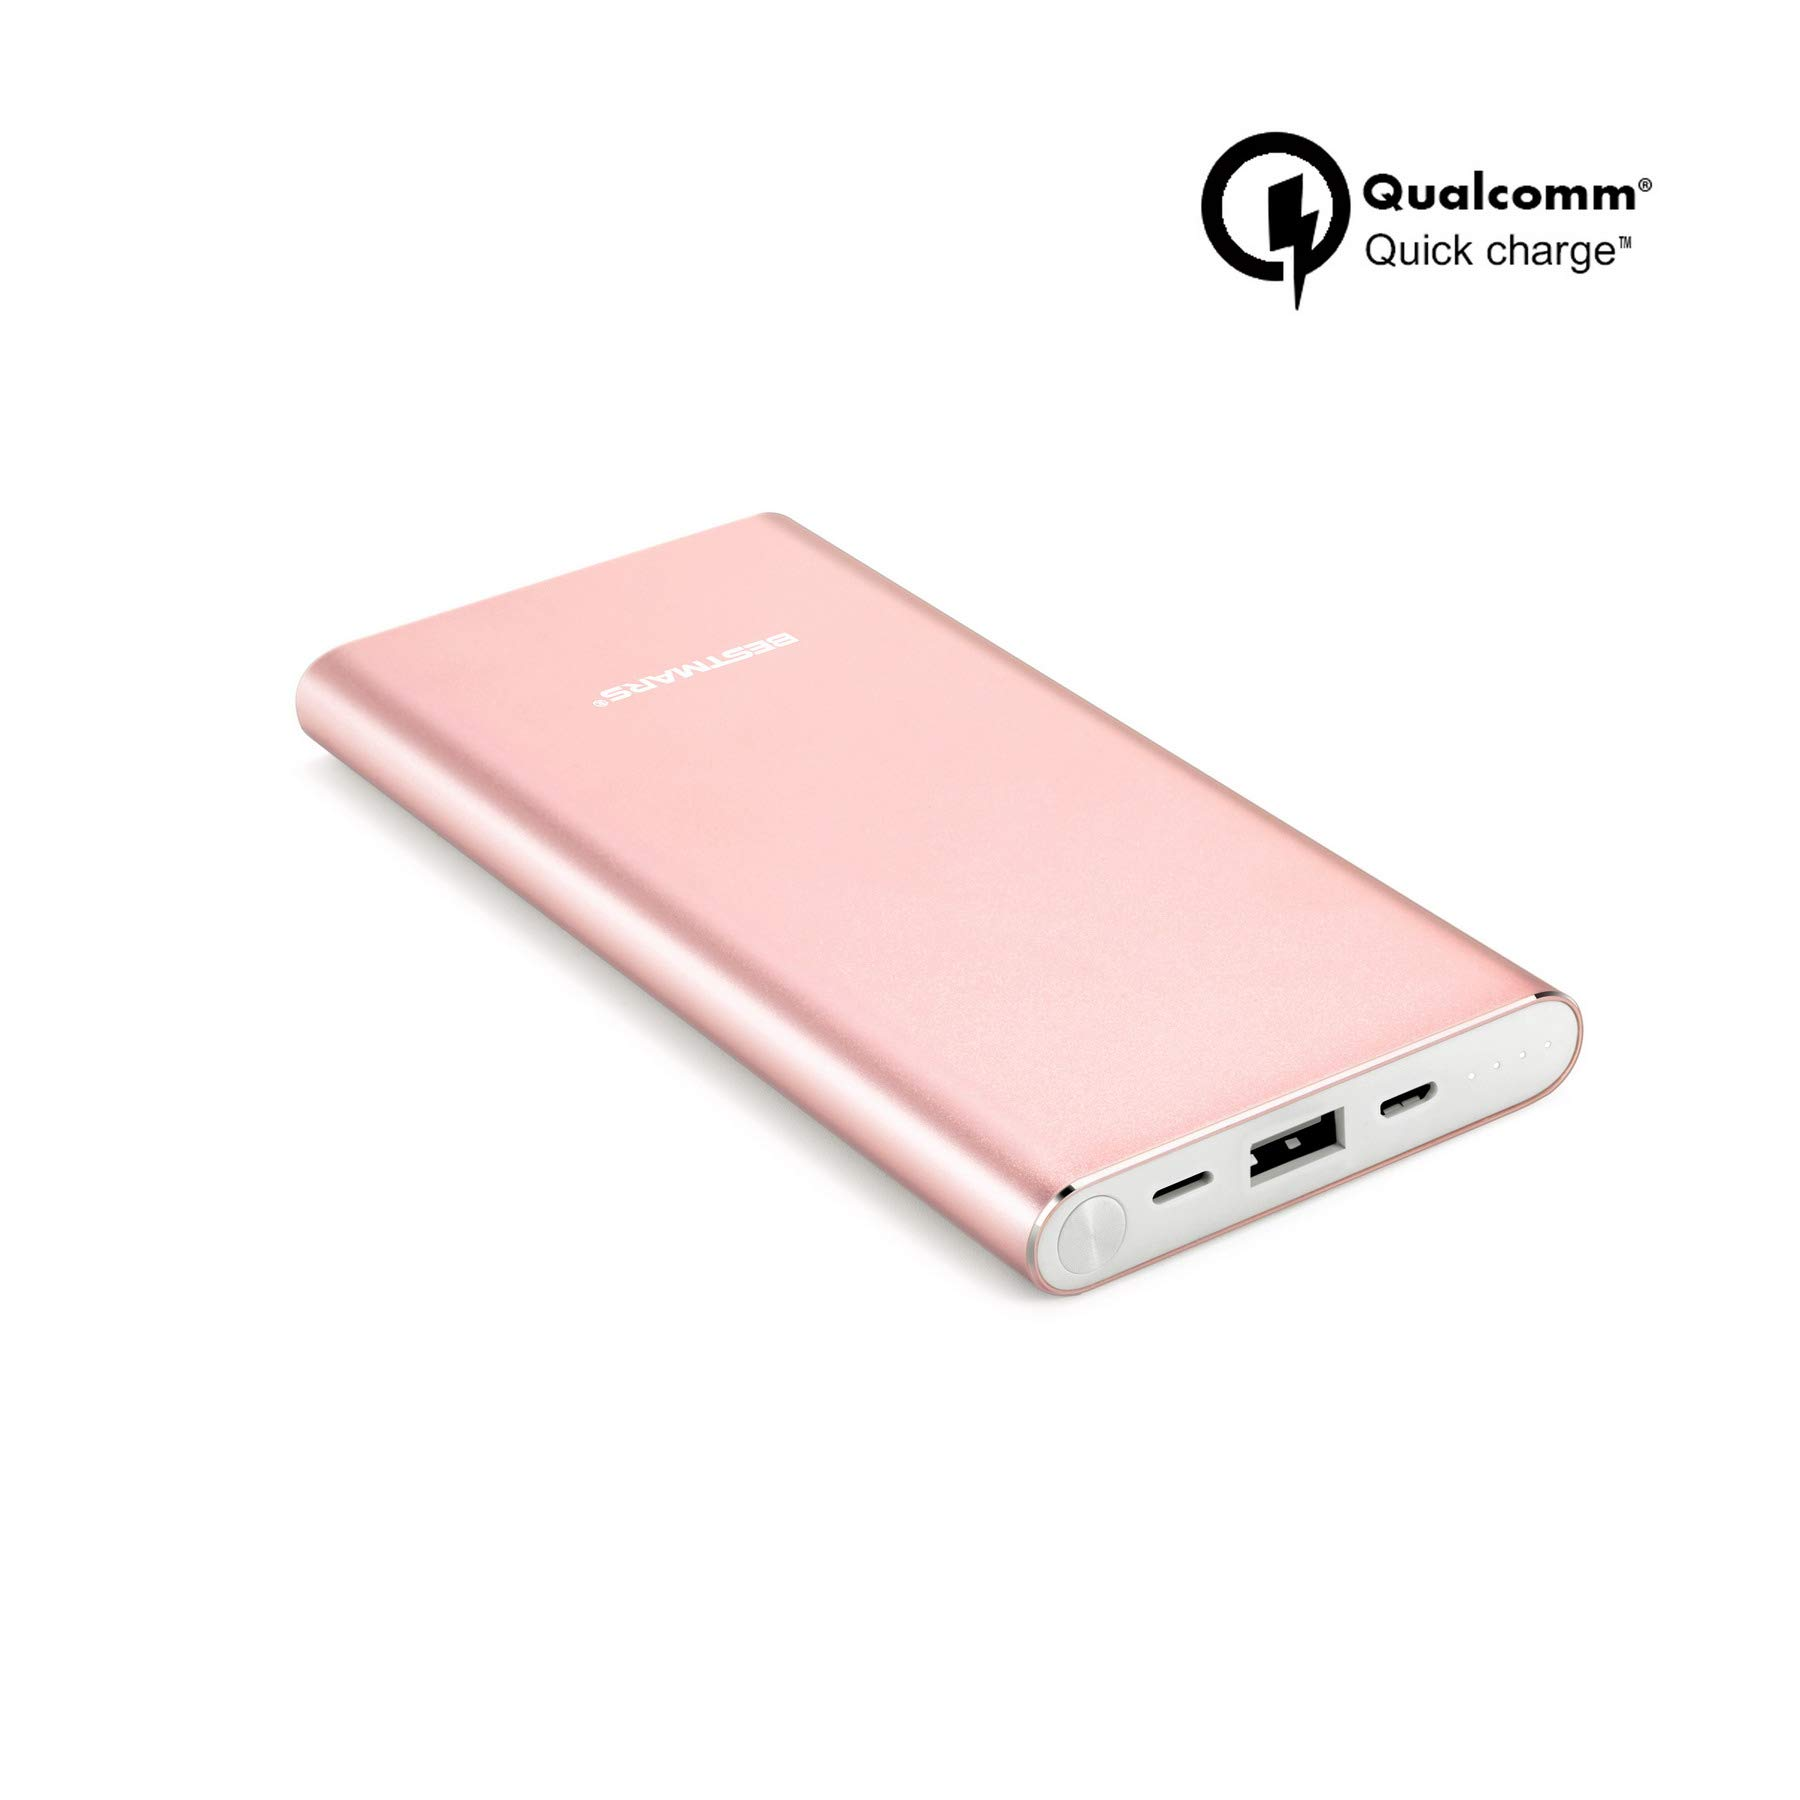 10000mAh Quick Charge QC 3.0 Portable Charger Fast Charging Power Bank Slim Back Up Battery Pack Compatible For iPhone X XS MAX XR 8 7 6 6s Plus 5s & iPad Android Samsung Galaxy Cell Phone - Rose Gold by BESTMARS